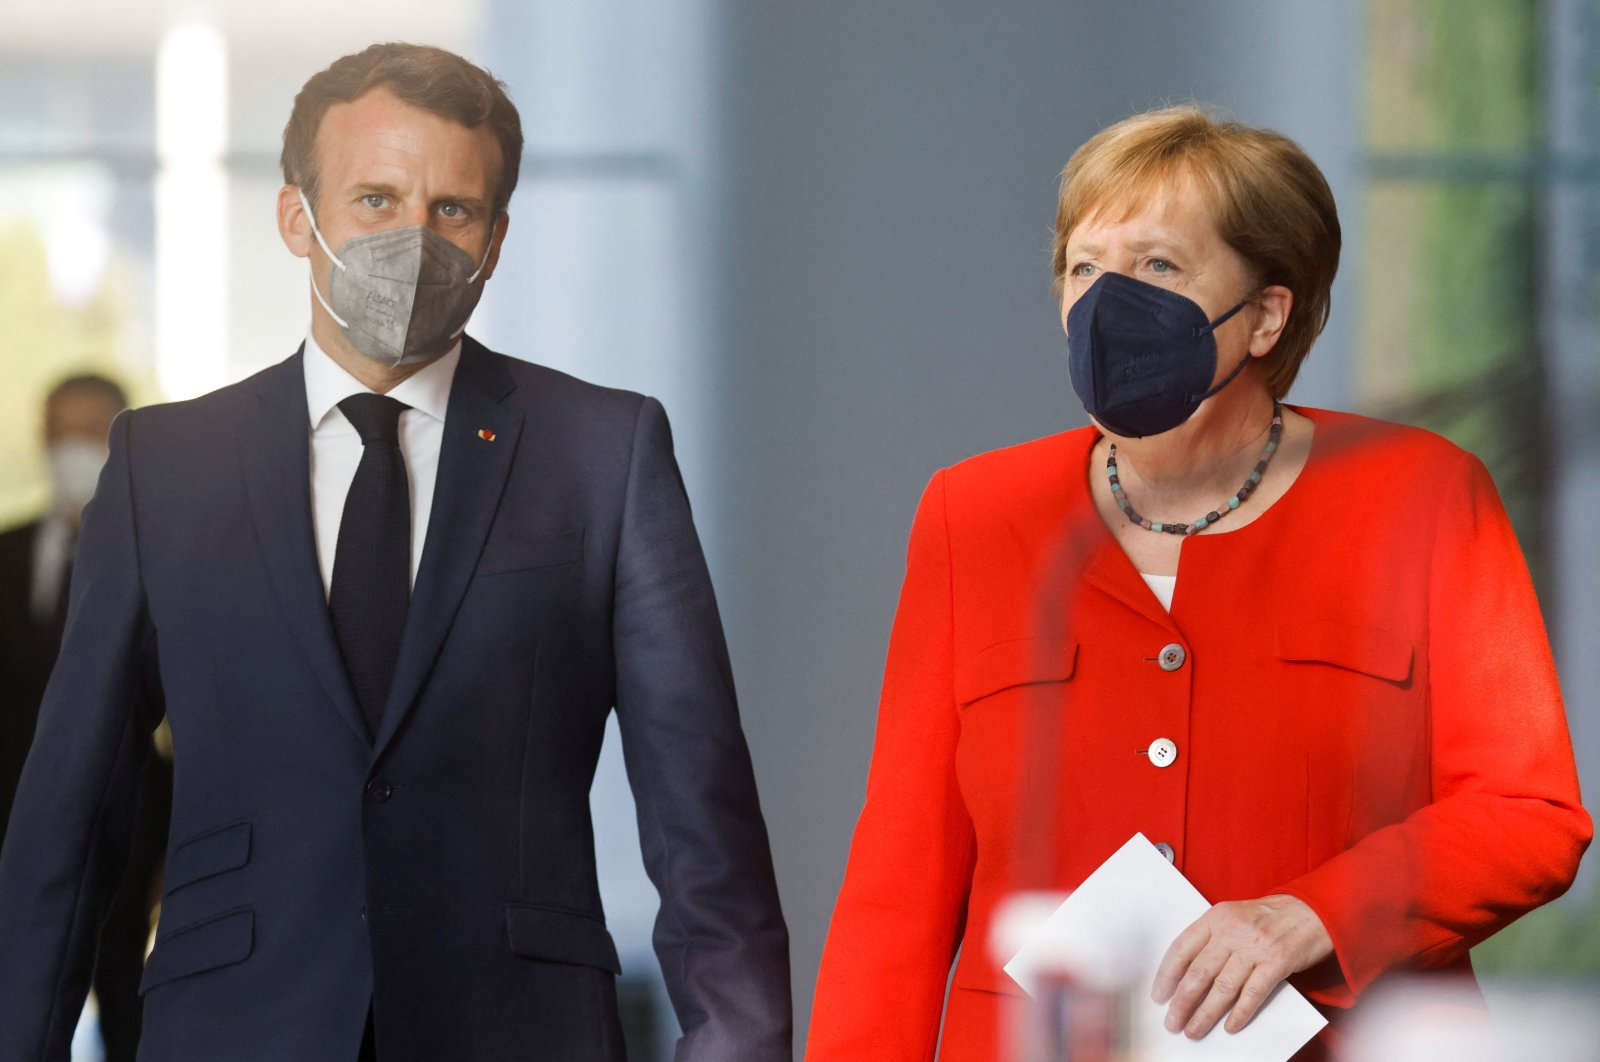 German Chancellor Angela Merkel and French President Emmanuel Macron arrive to address a press statement ahead of talks at the Chancellery in Berlin, Germany, June 18, 2021. (AFP Photo)